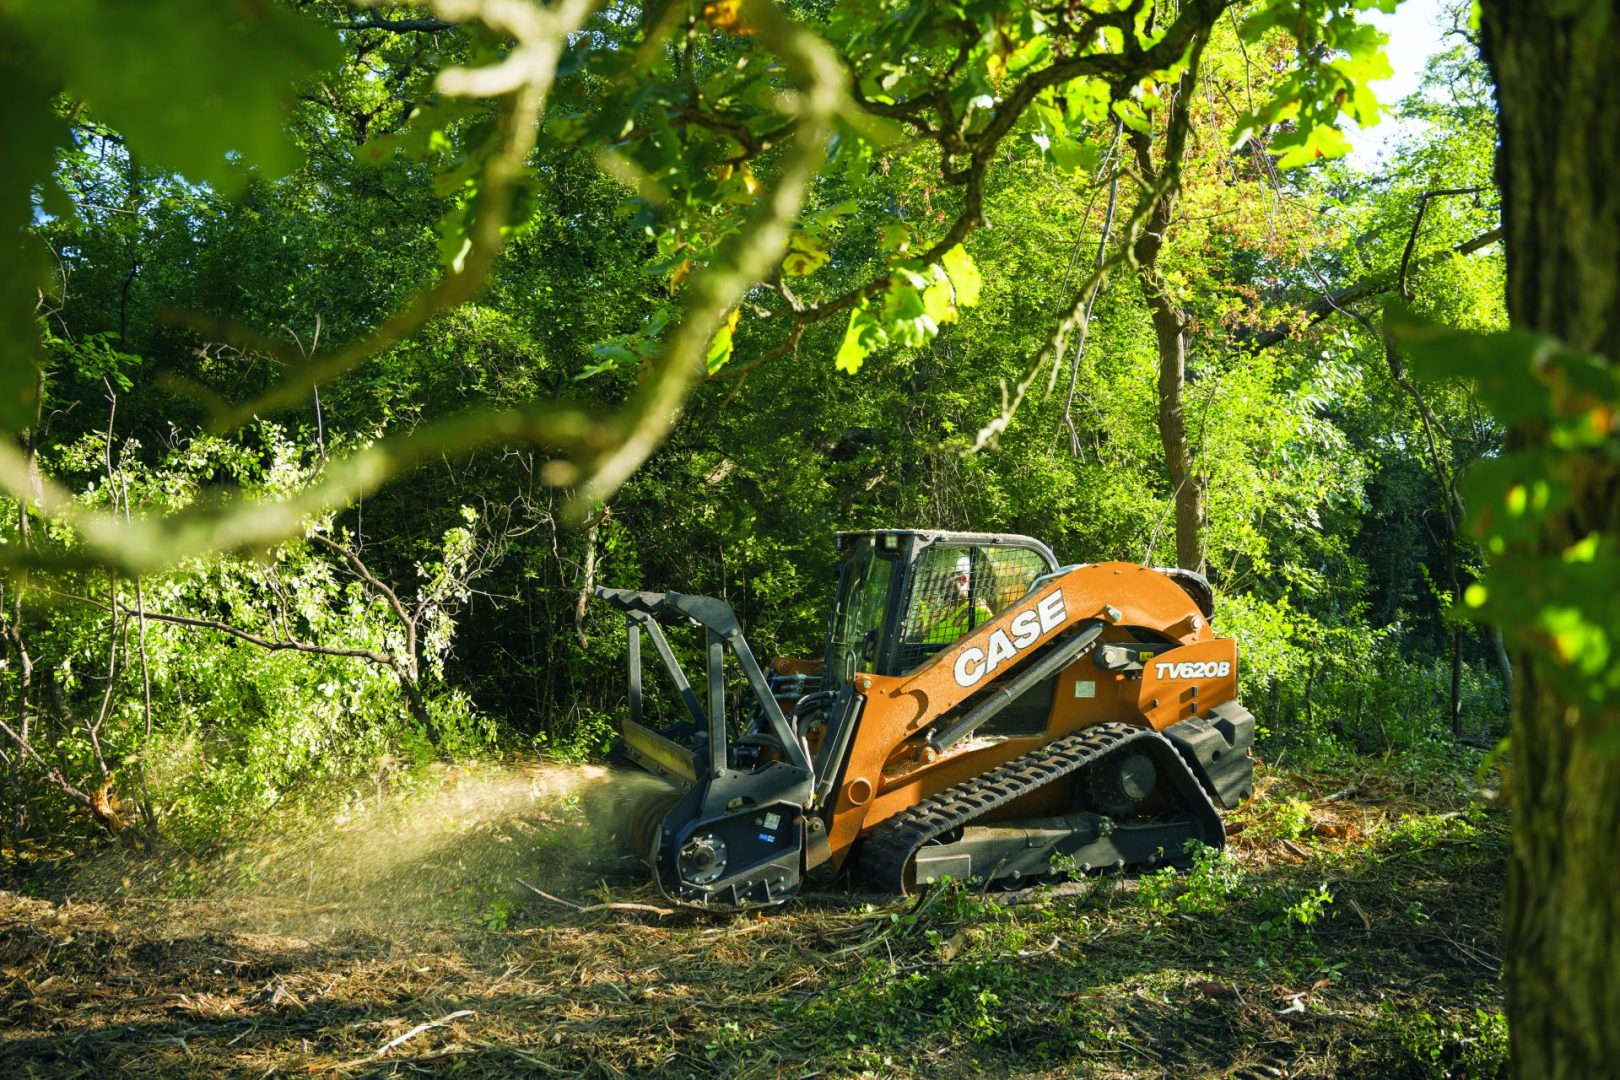 The CASE TV620B in a forest using a mulching attachment.